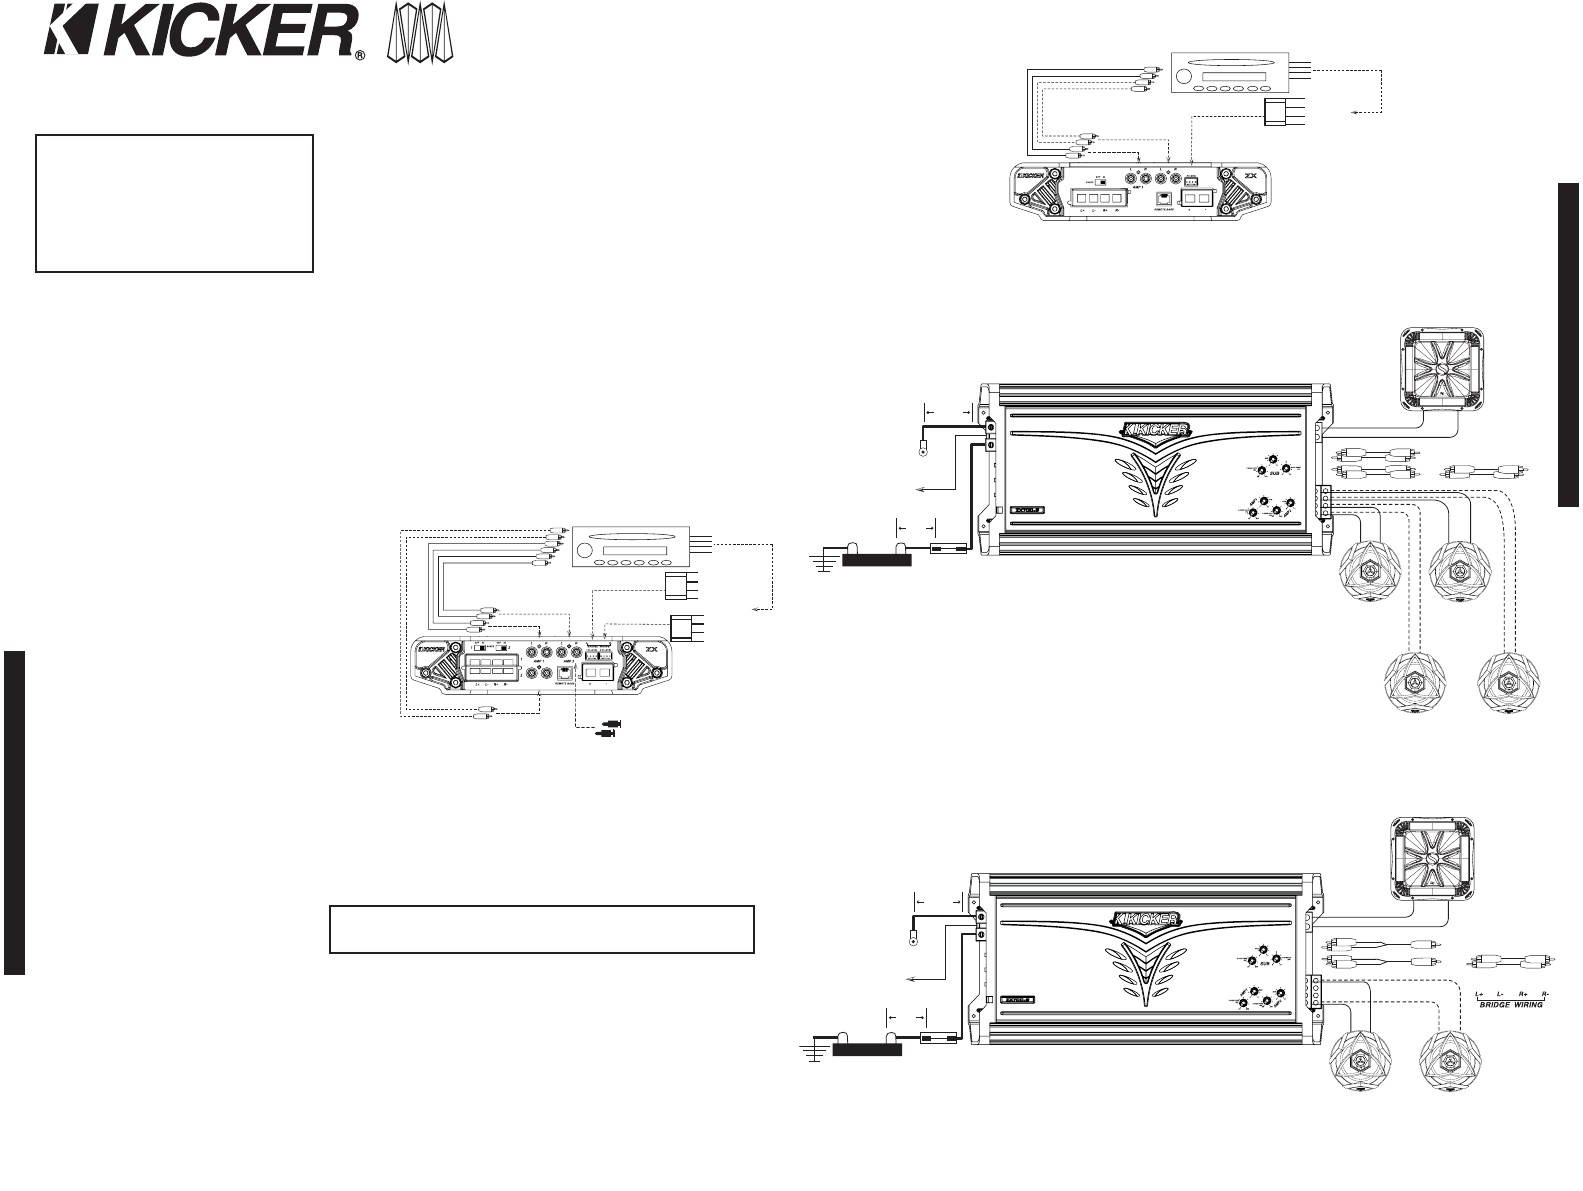 Ssv Wiring Diagram - Gw.schwabenschamanen.de • on kicker solo-baric 15 diagram, kicker l7 12 box, kicker sub wiring, kicker dual voice coil diagram, kicker speaker wiring, kicker wiring specs, kicker cvr 12 wiring, kicker bandpass box, kicker door speakers, srt-4 kicker sub wire diagram, kicker 1500 1 wiring,